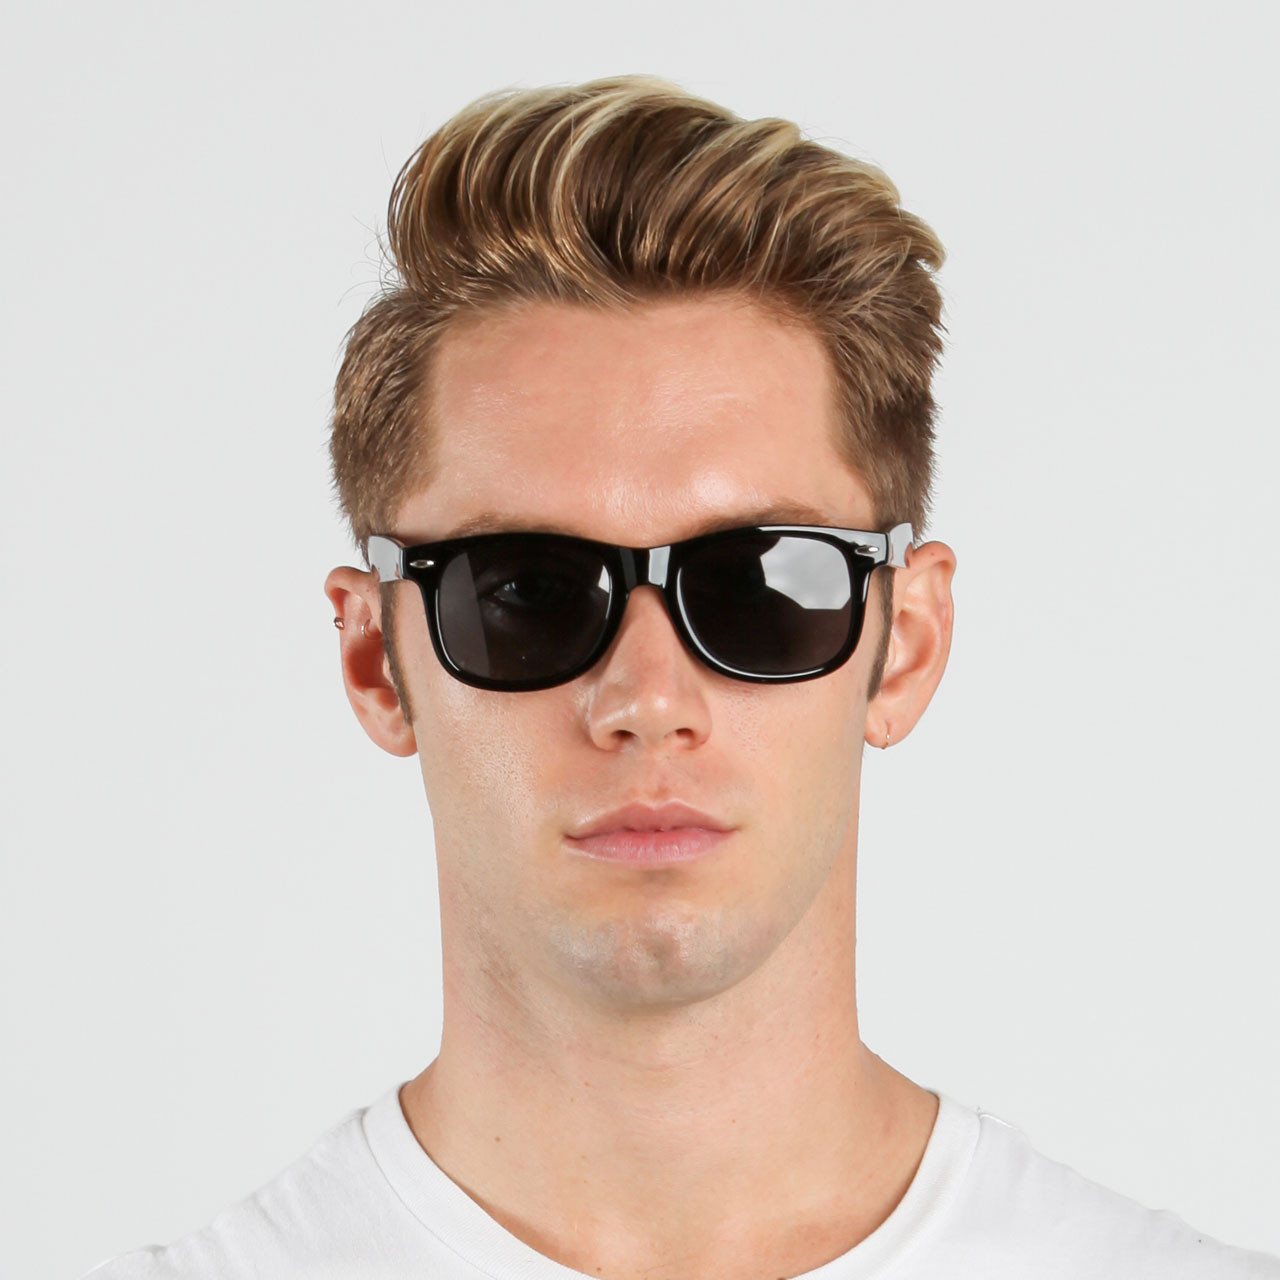 a8abc0f8c63 Wholesale Black Plastic Polarized UV400 Classic Square Sunglasses Unisex  Bulk